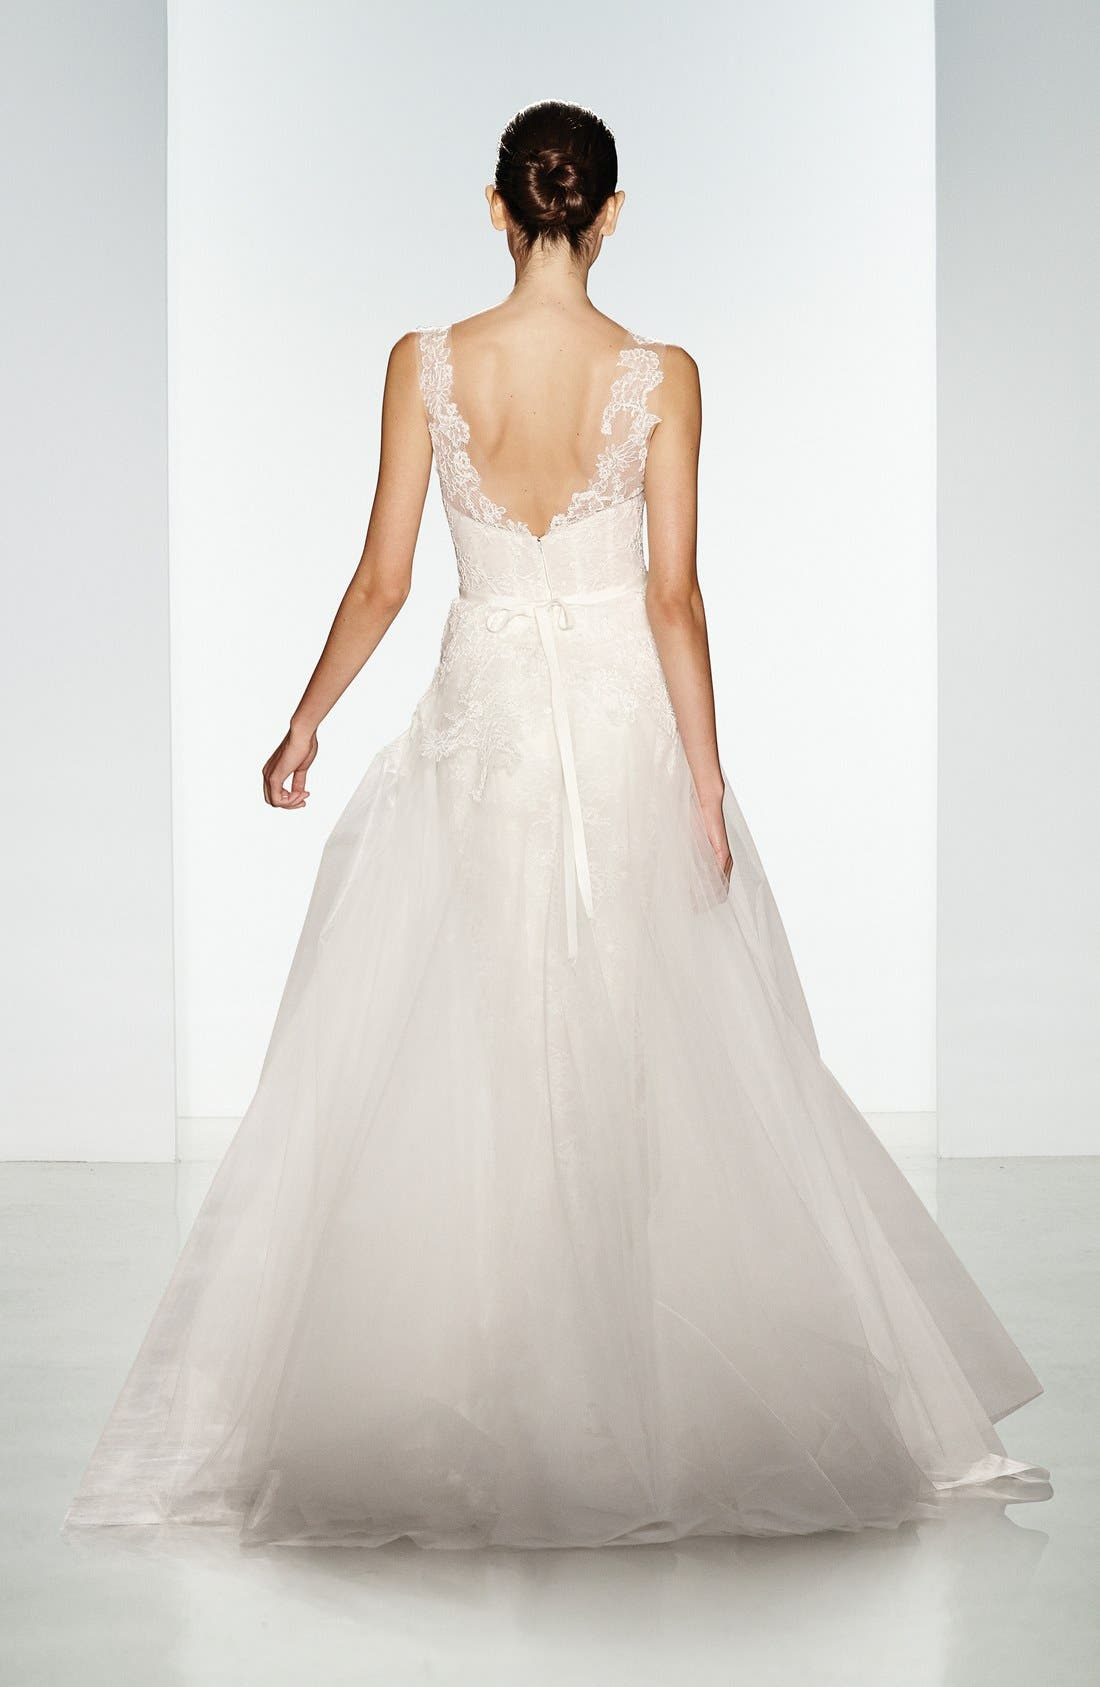 Rae Corded Lace Gown with Tulle Overskirt,                             Alternate thumbnail 3, color,                             901